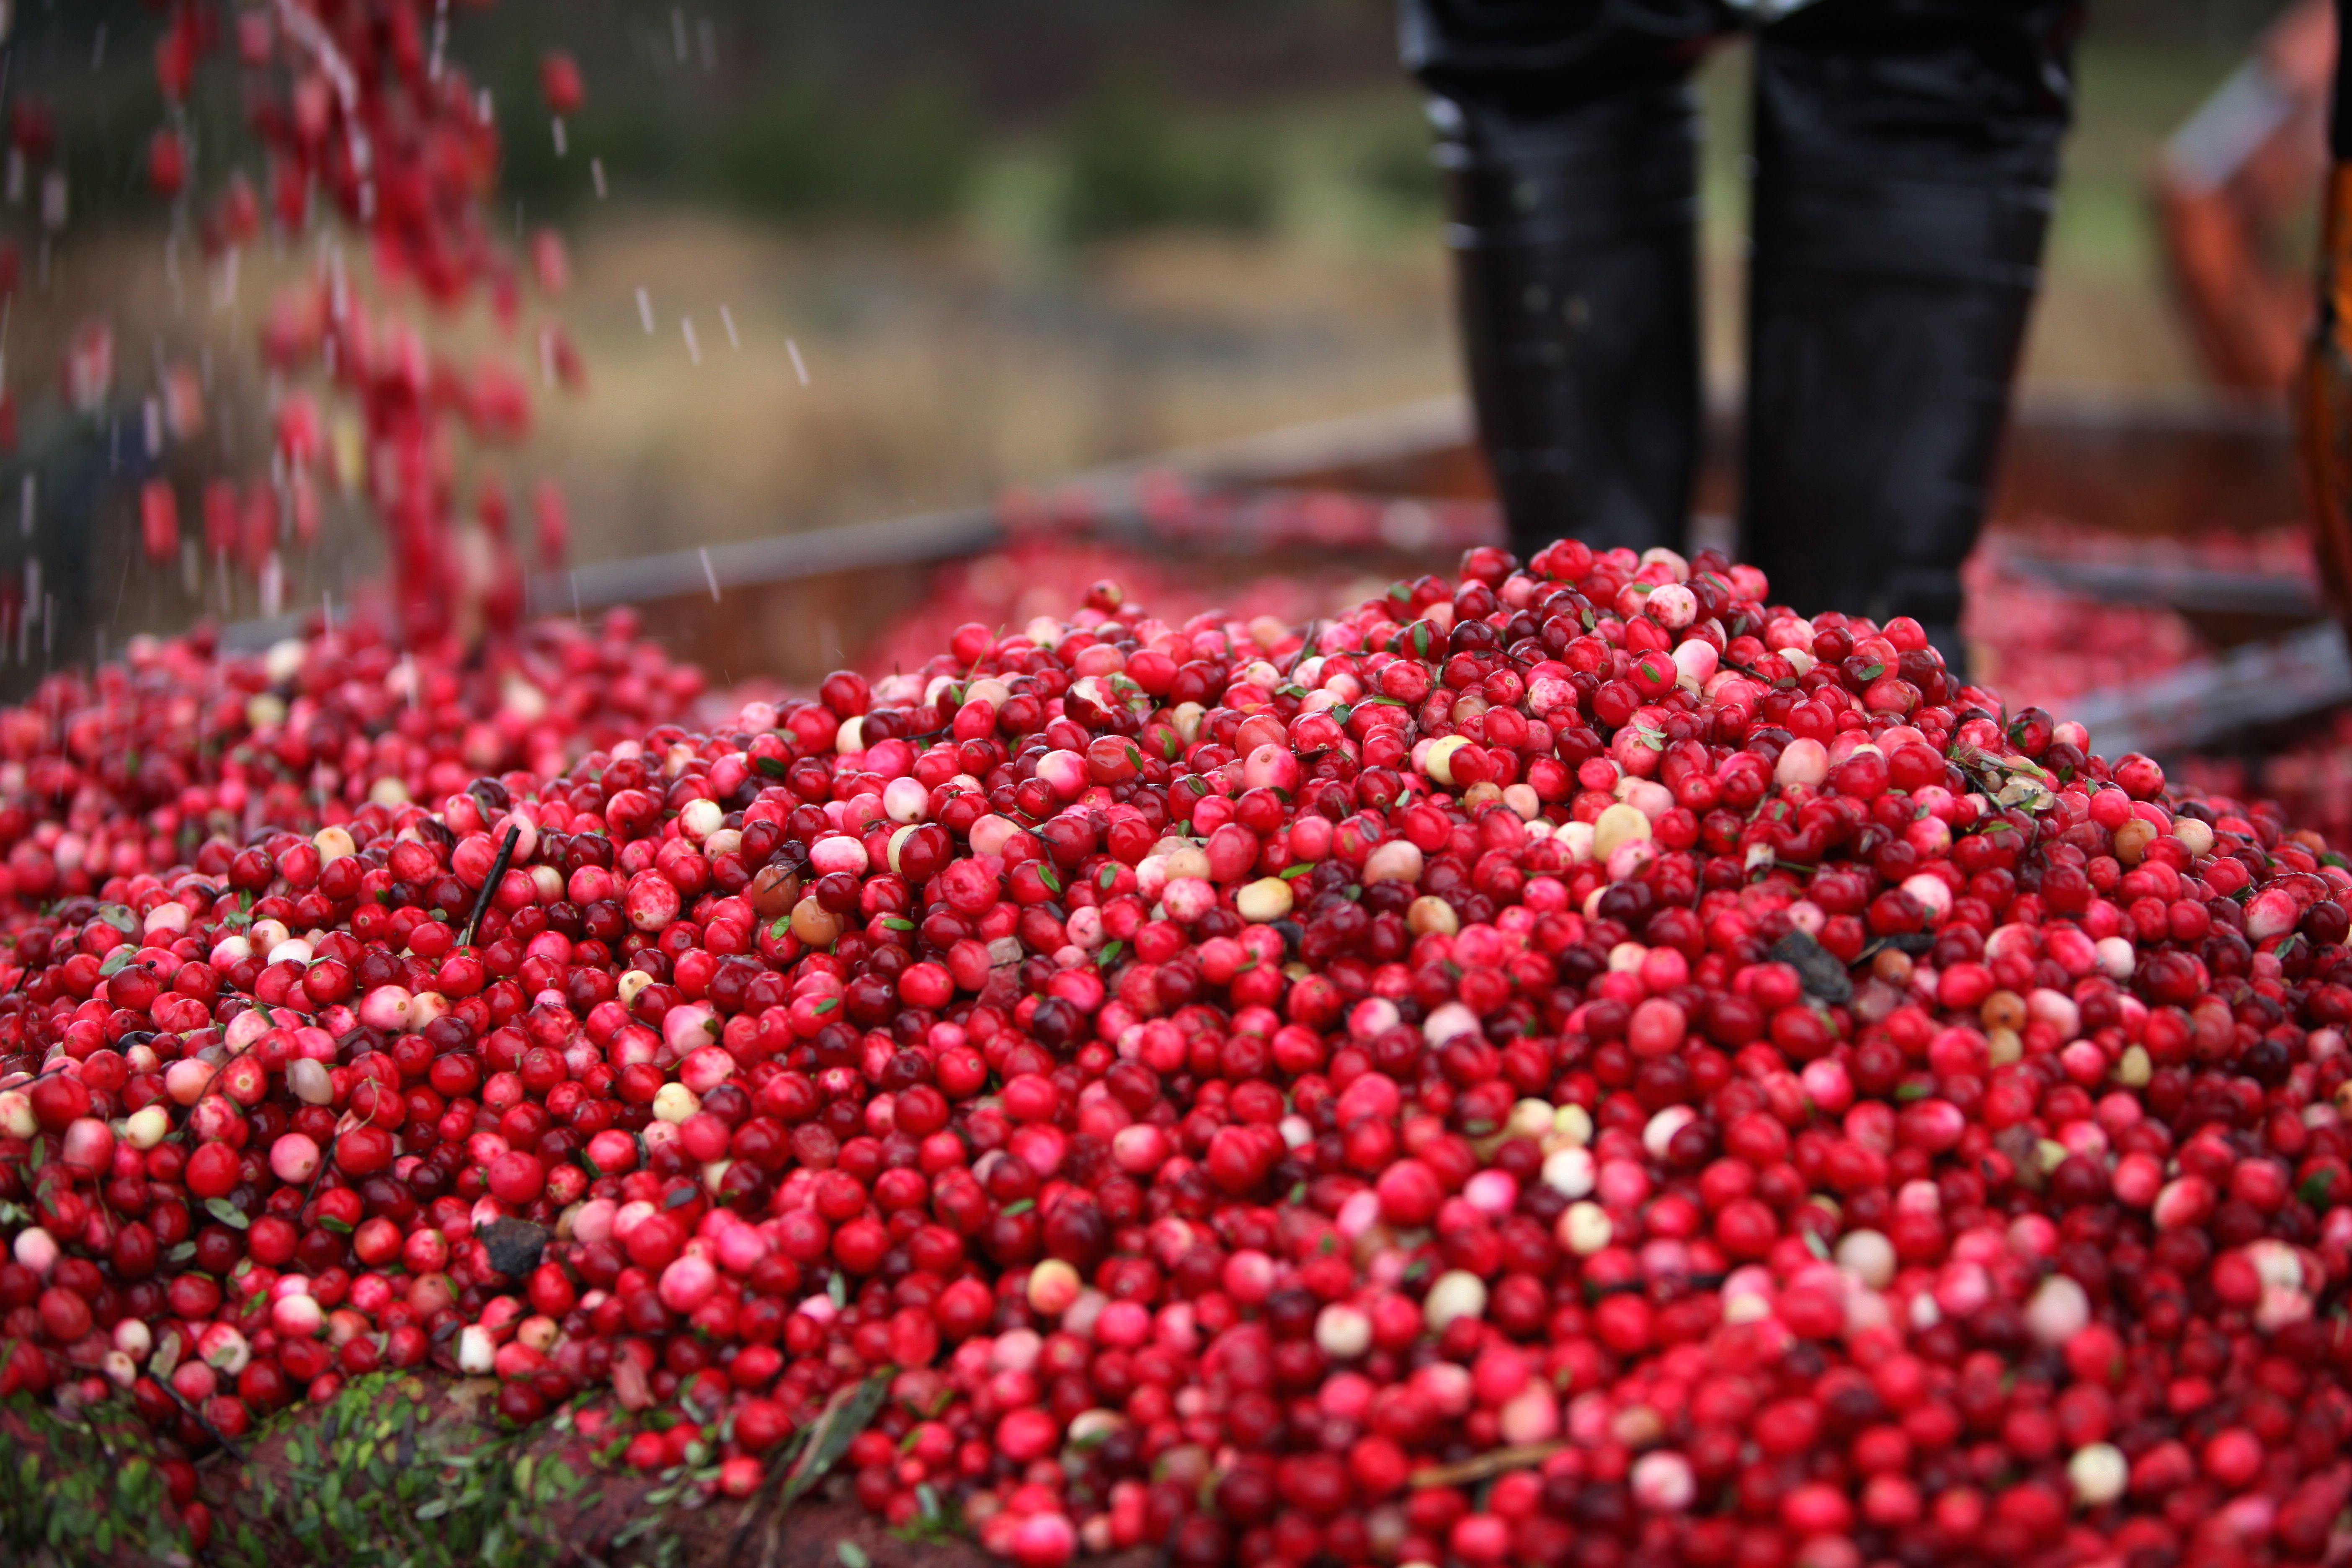 There's something for everyone at Eagle River's annual Cranberry Fest, October 1-2! Make your plans to visit now.